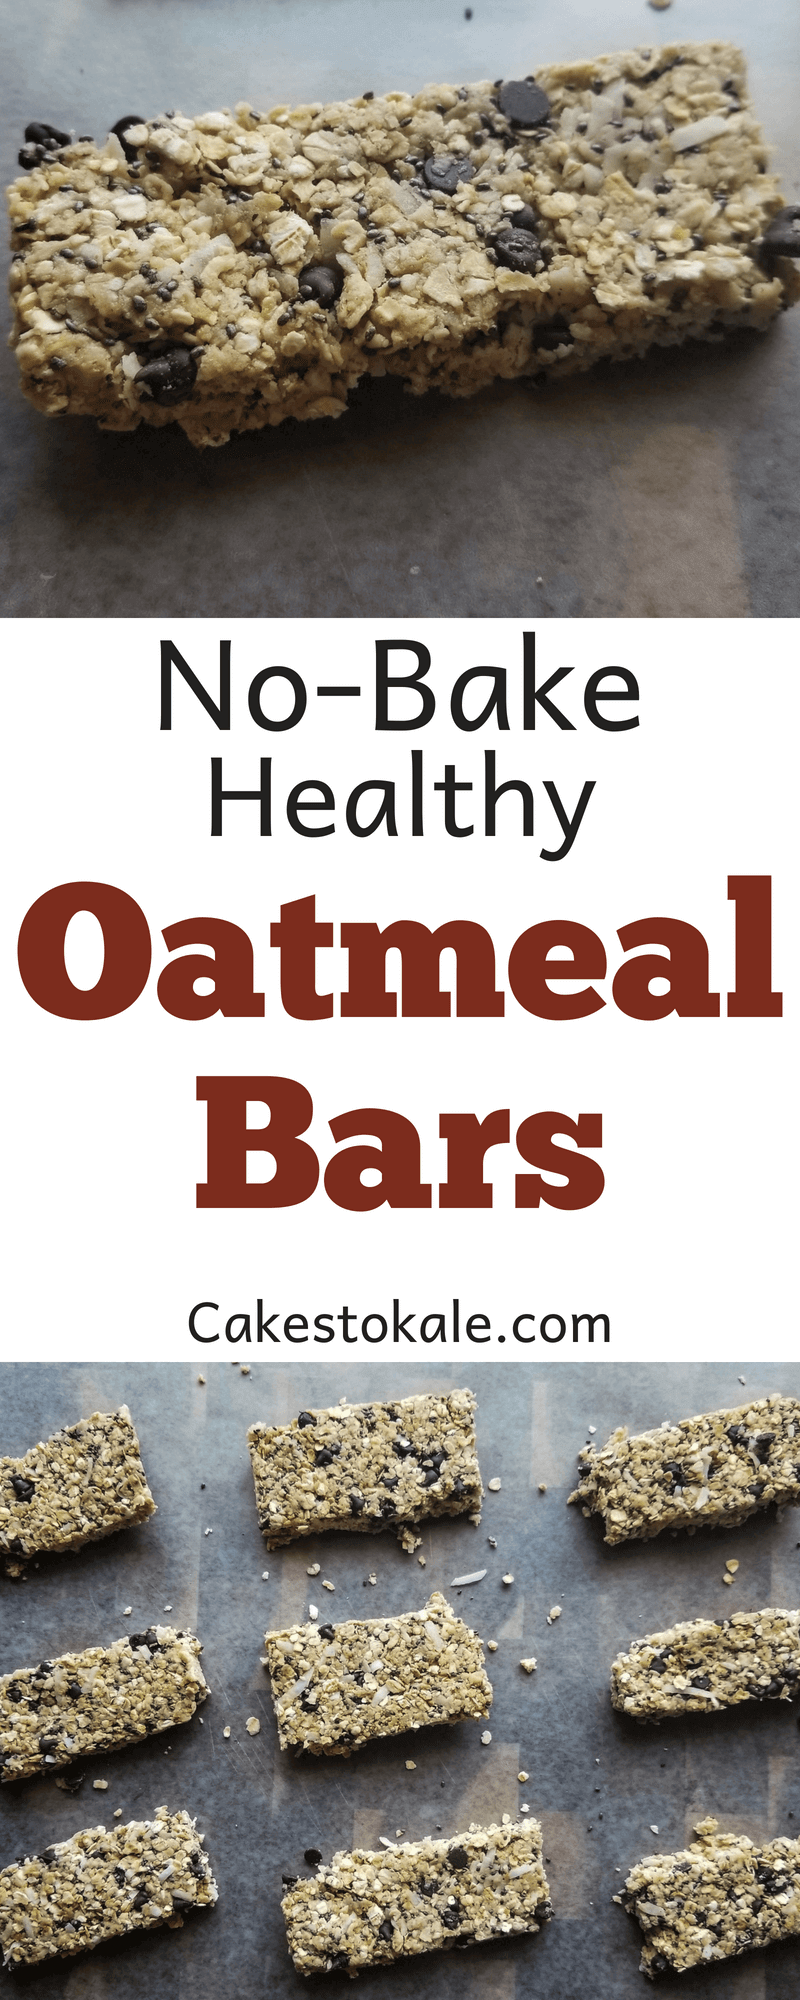 No Bake Healthy Oatmeal Bars - With VeganSmart